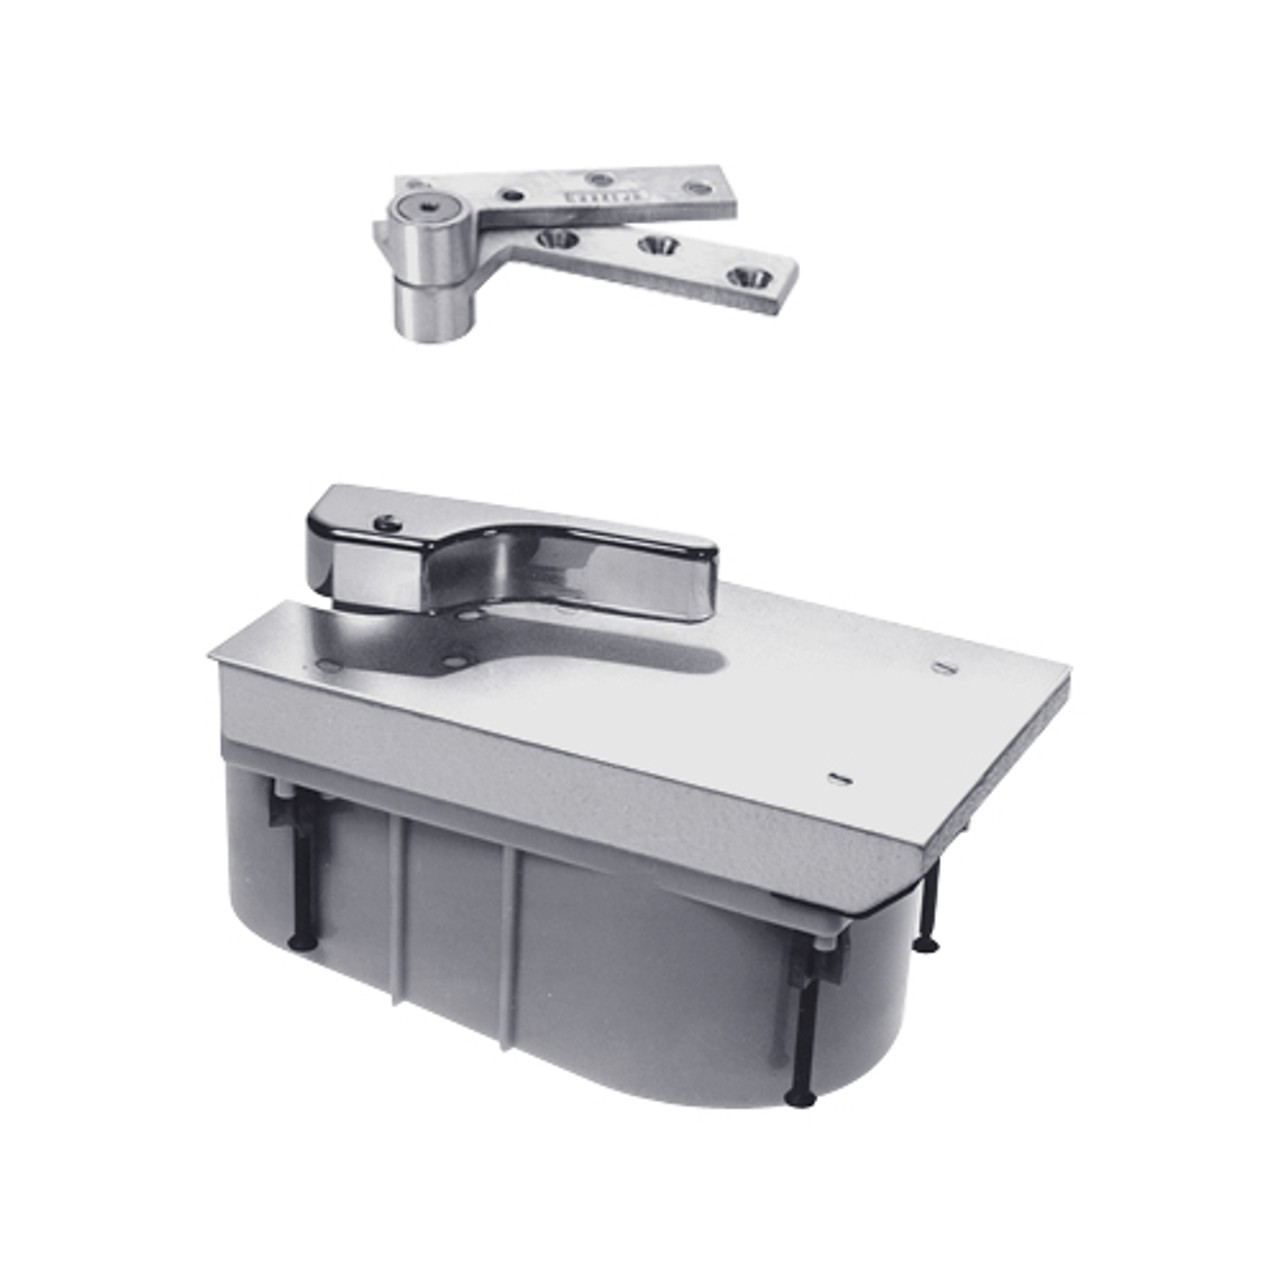 PHQ27-85S-RH-626 Rixson 27 Series Heavy Duty Quick Install Offset Hung Floor Closer in Satin Chrome Finish